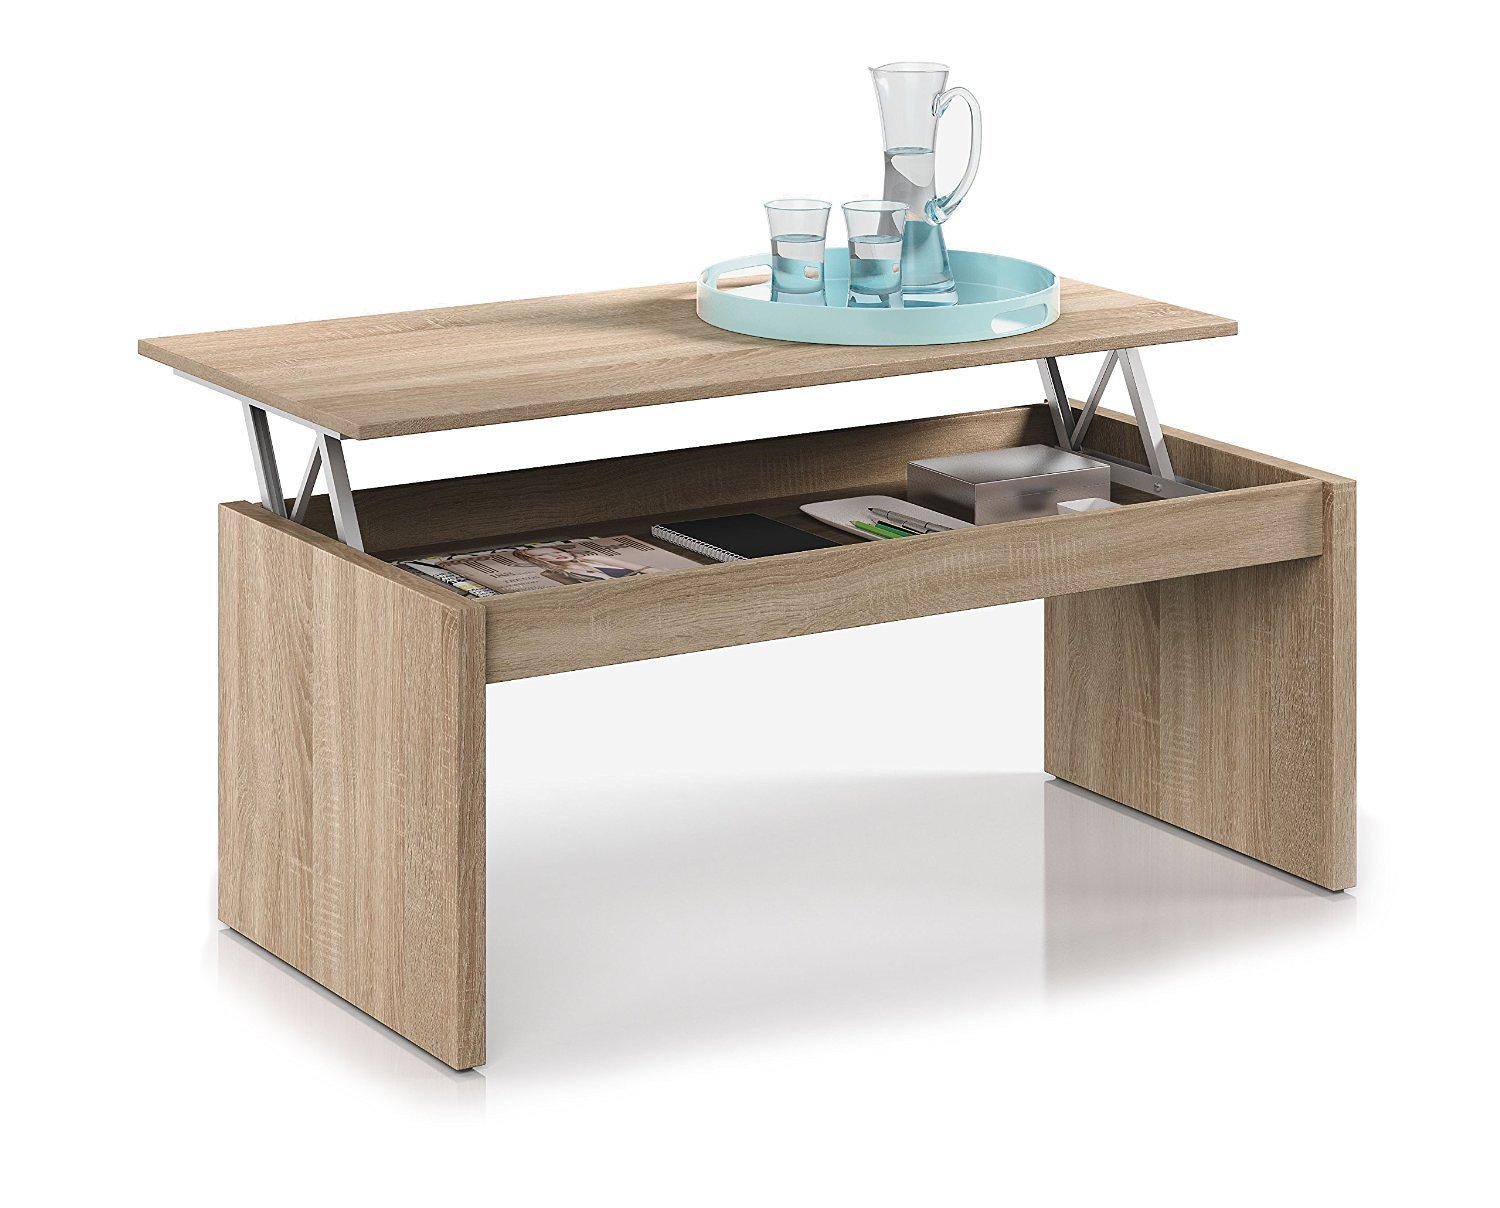 Fabulous habitdesign f table basse chne naturel avec for Table basse relevable